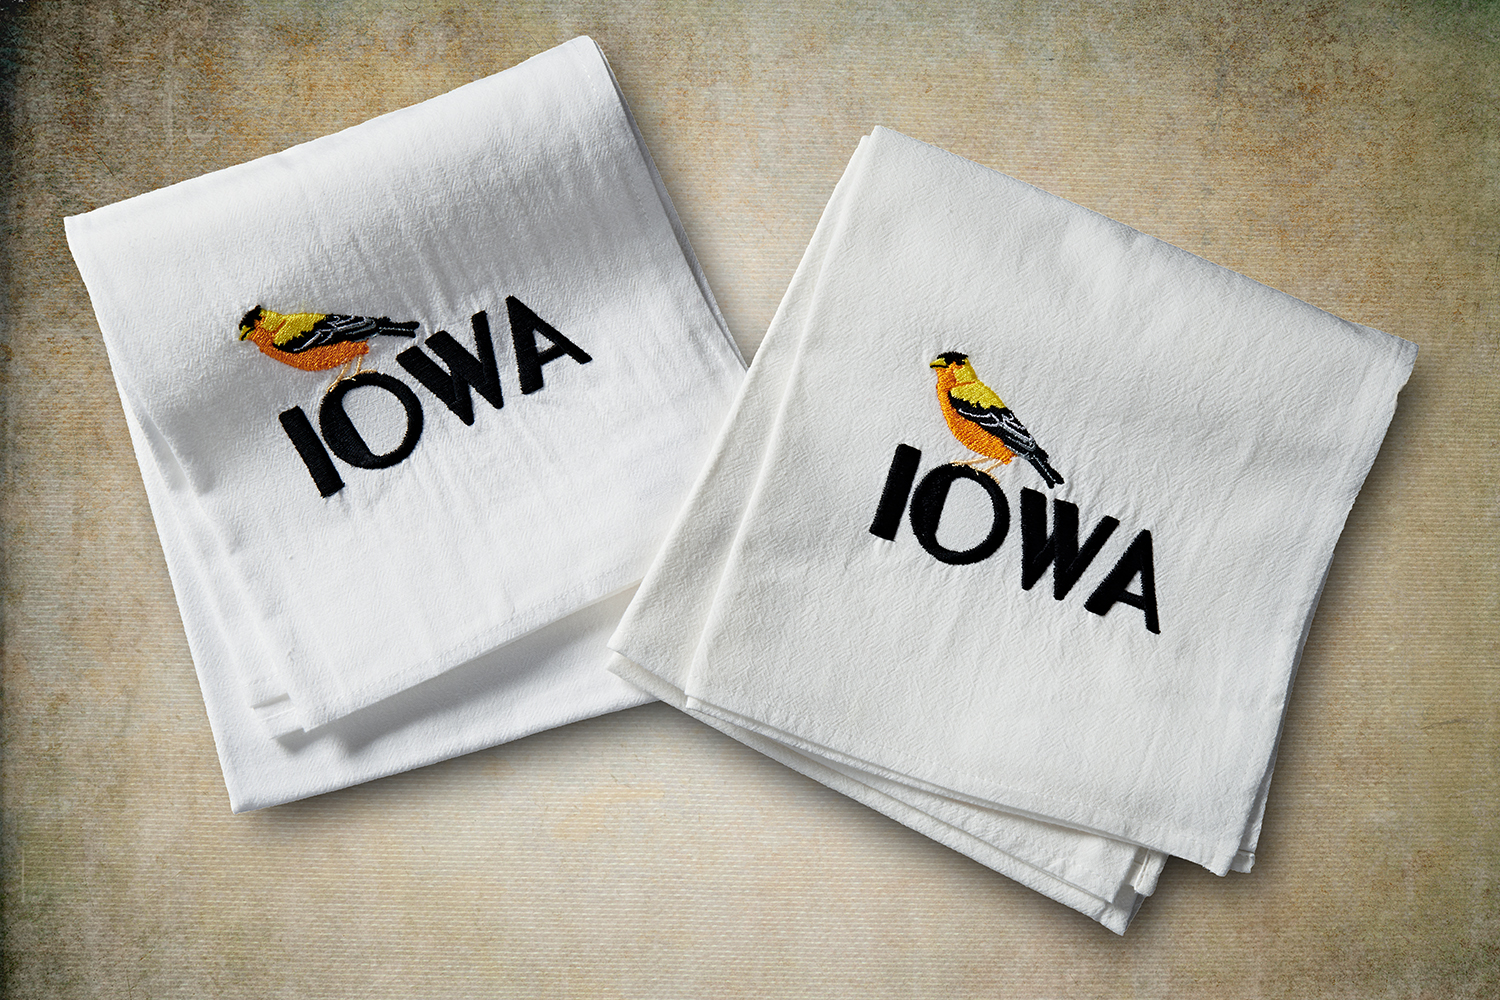 910372 WSS IOWA FlourSackTowel GoldFinch 8292 Copy